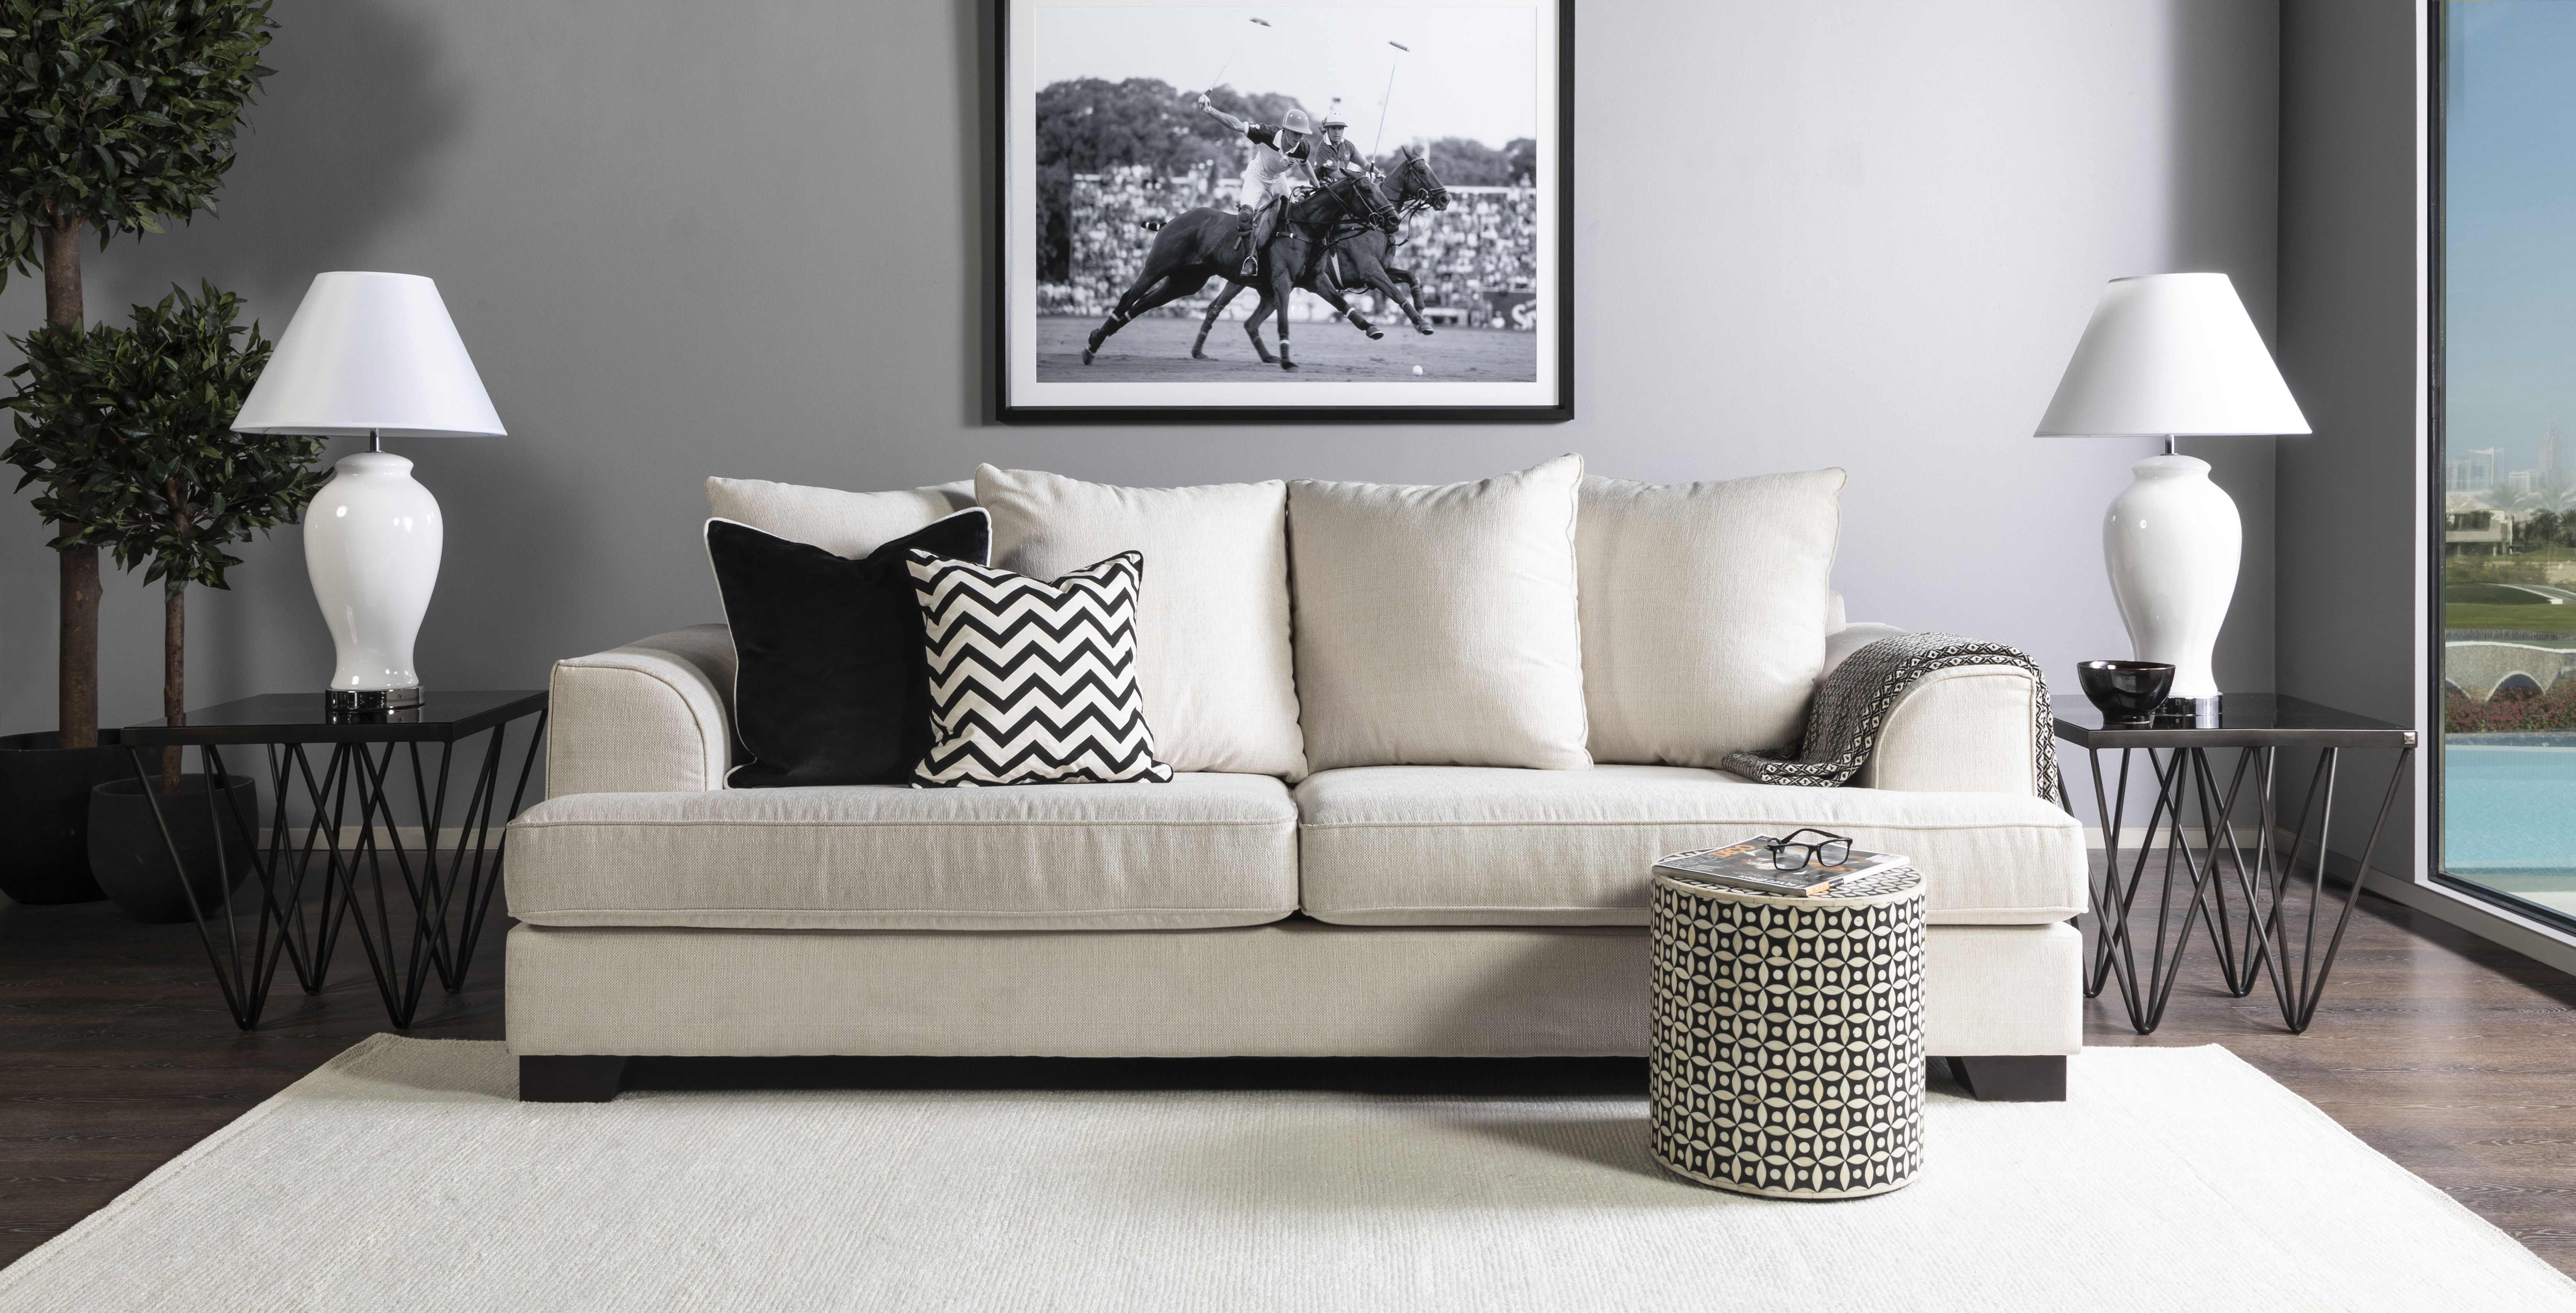 Iconic I Living Room Furniture Styles Black And White Furniture Trendy Home Decor